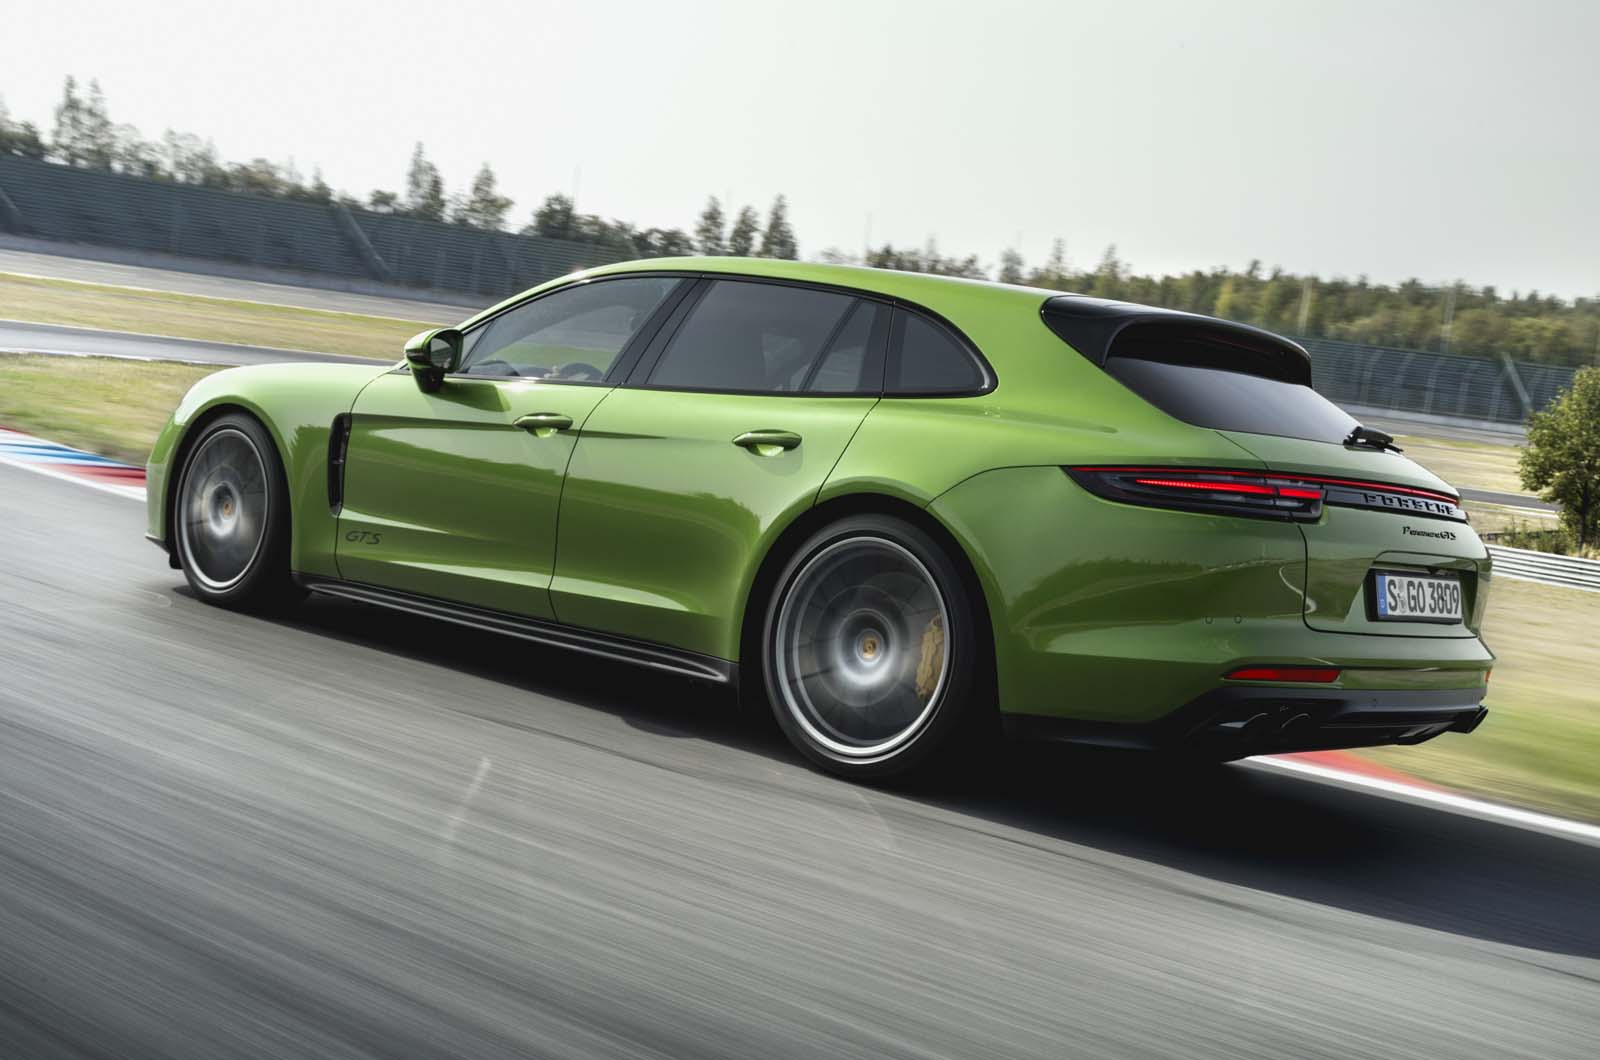 New Porsche Panamera Gts Revealed With Styling And Chassis Upgrades Autocar